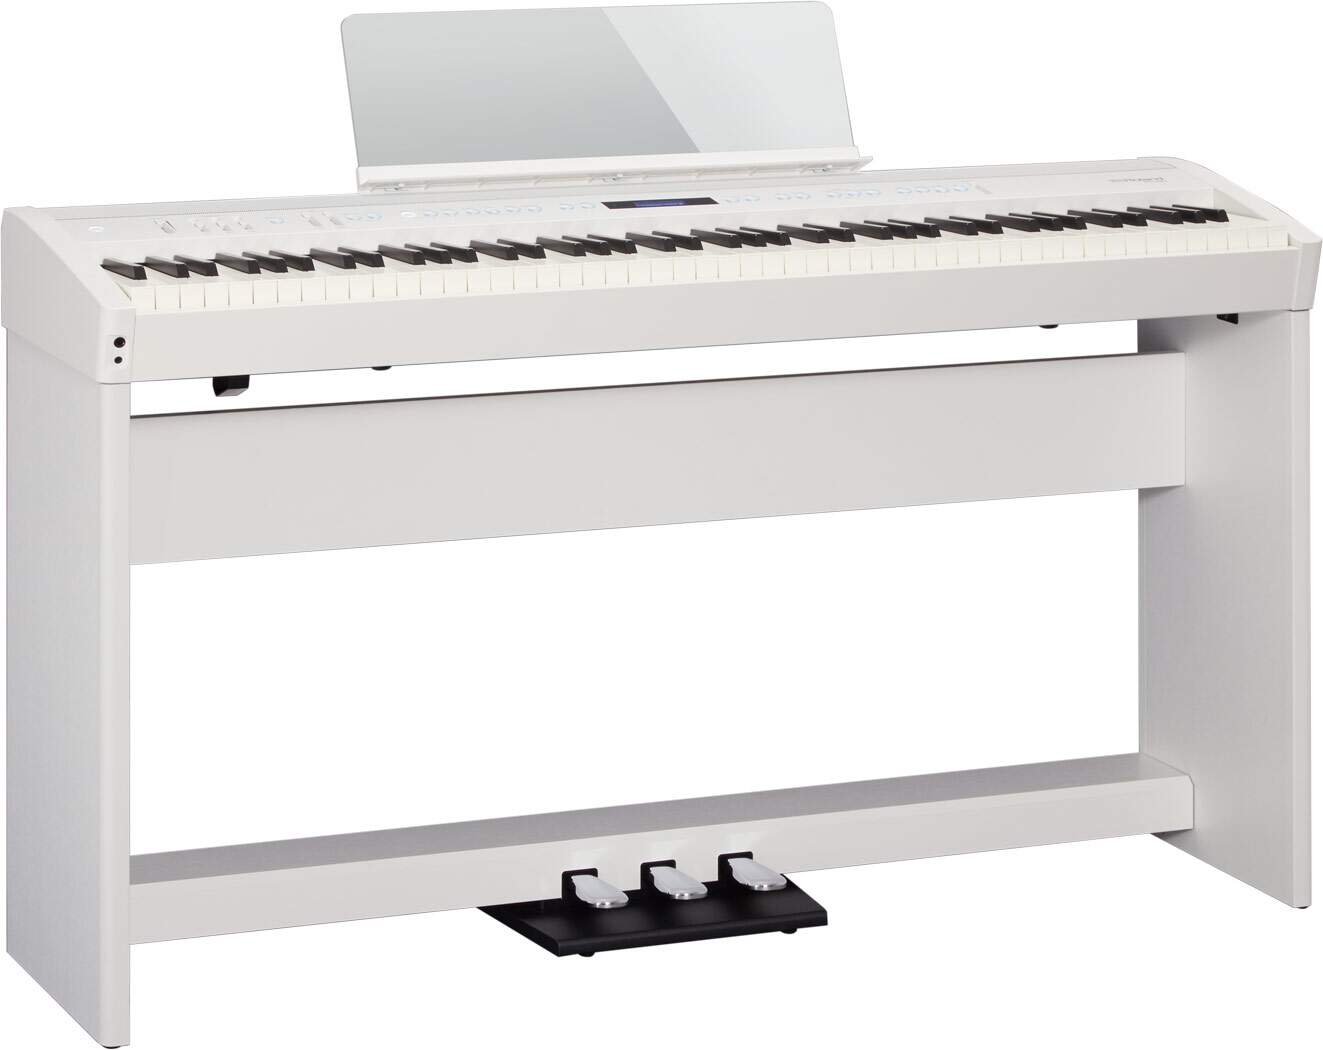 Piano Roland FP60 WH FP60WH + KSC72WH + KPD90WH